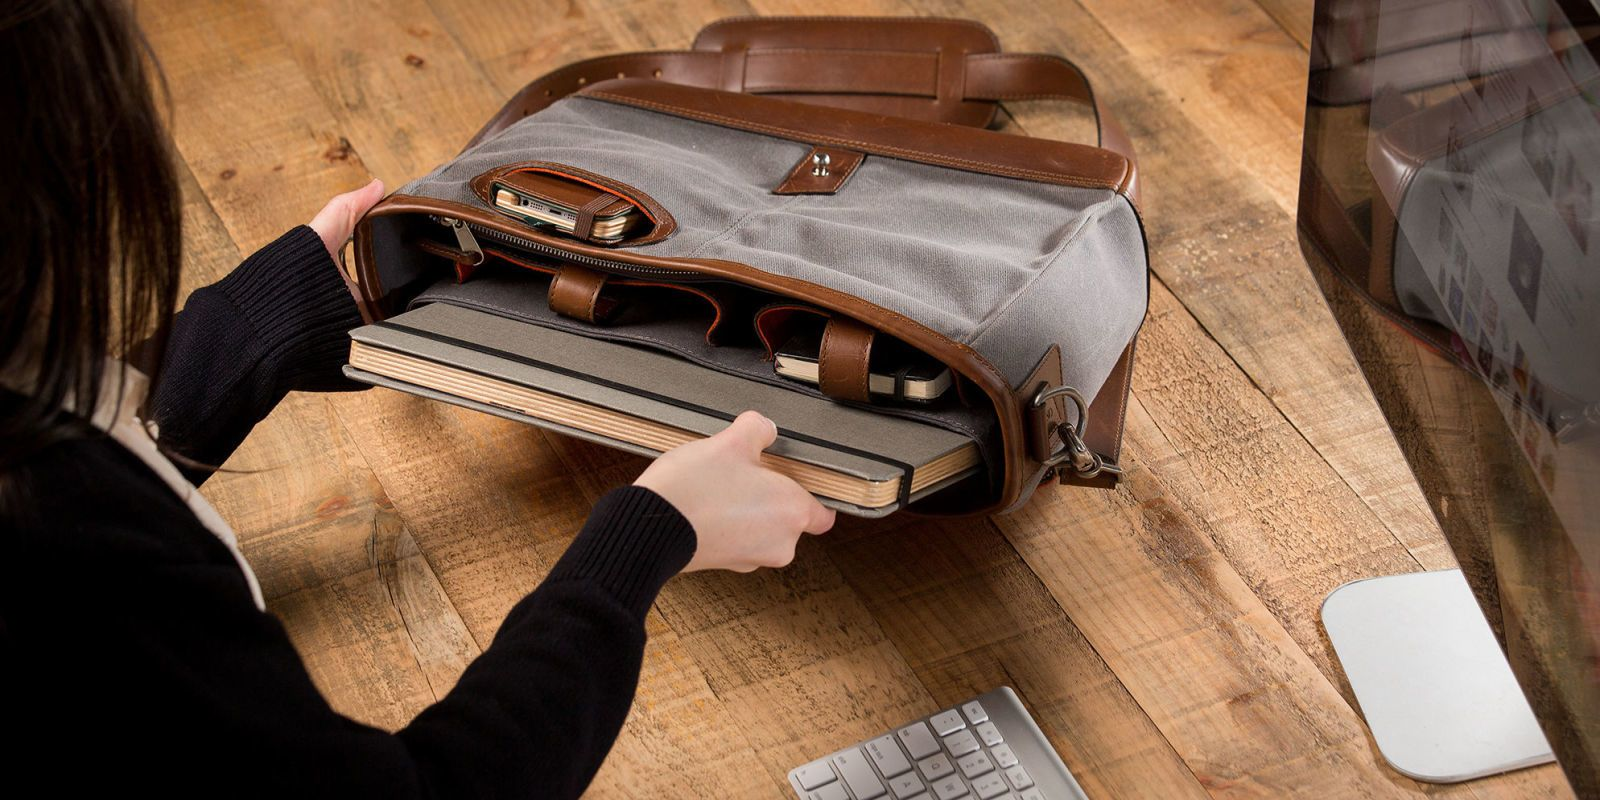 15 Essential Accessories for MacBook and MacBook Pro